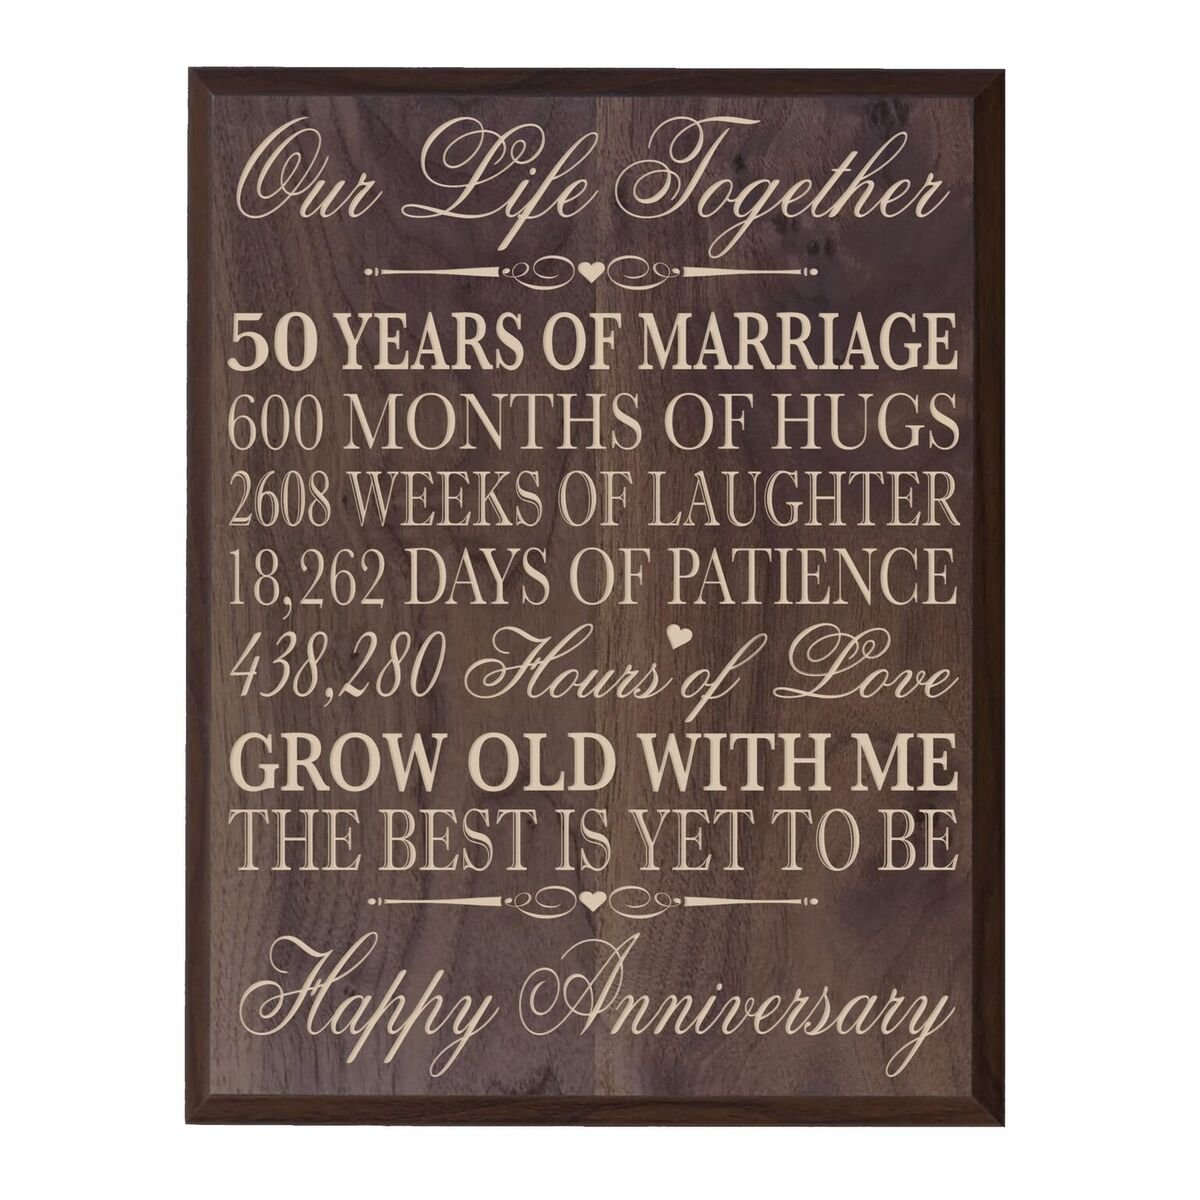 LifeSong Milestones 50th Wedding Anniversary Wall Plaque Gifts for Couple, 50th for Her,50th Wedding for Him 12'' W X 15'' H Wall Plaque (Grand Walnut)